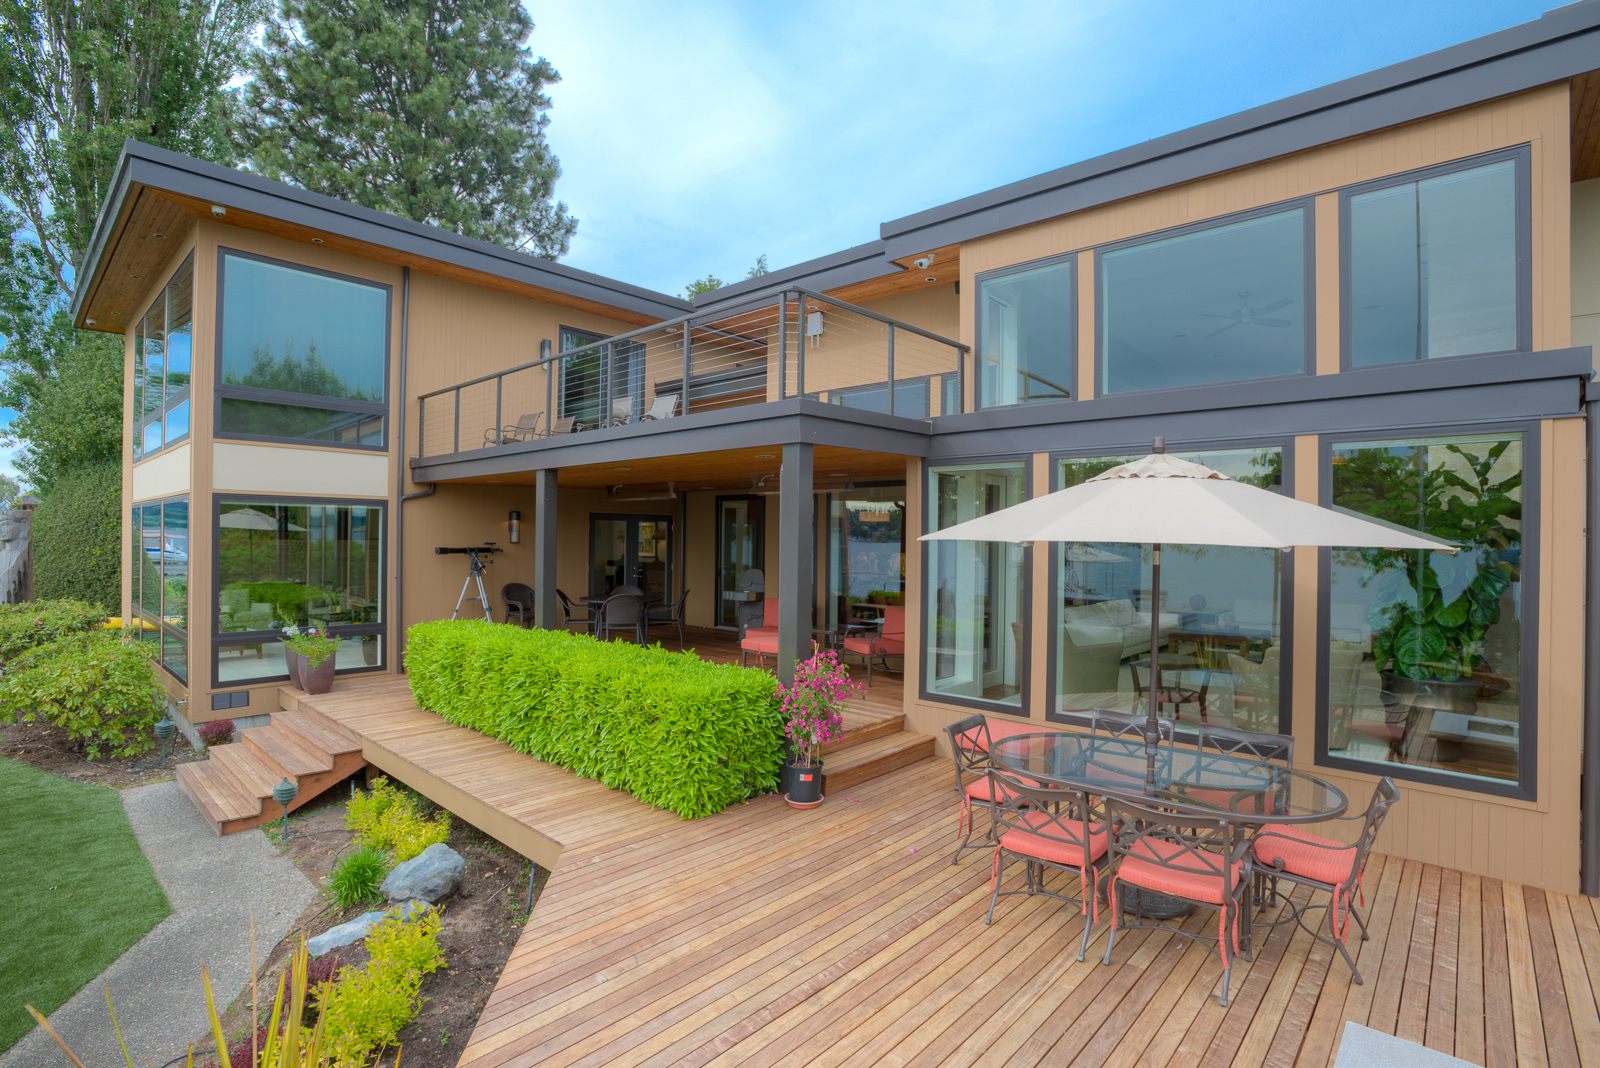 Lake_Washington_house-small_jpeg-058.jpg